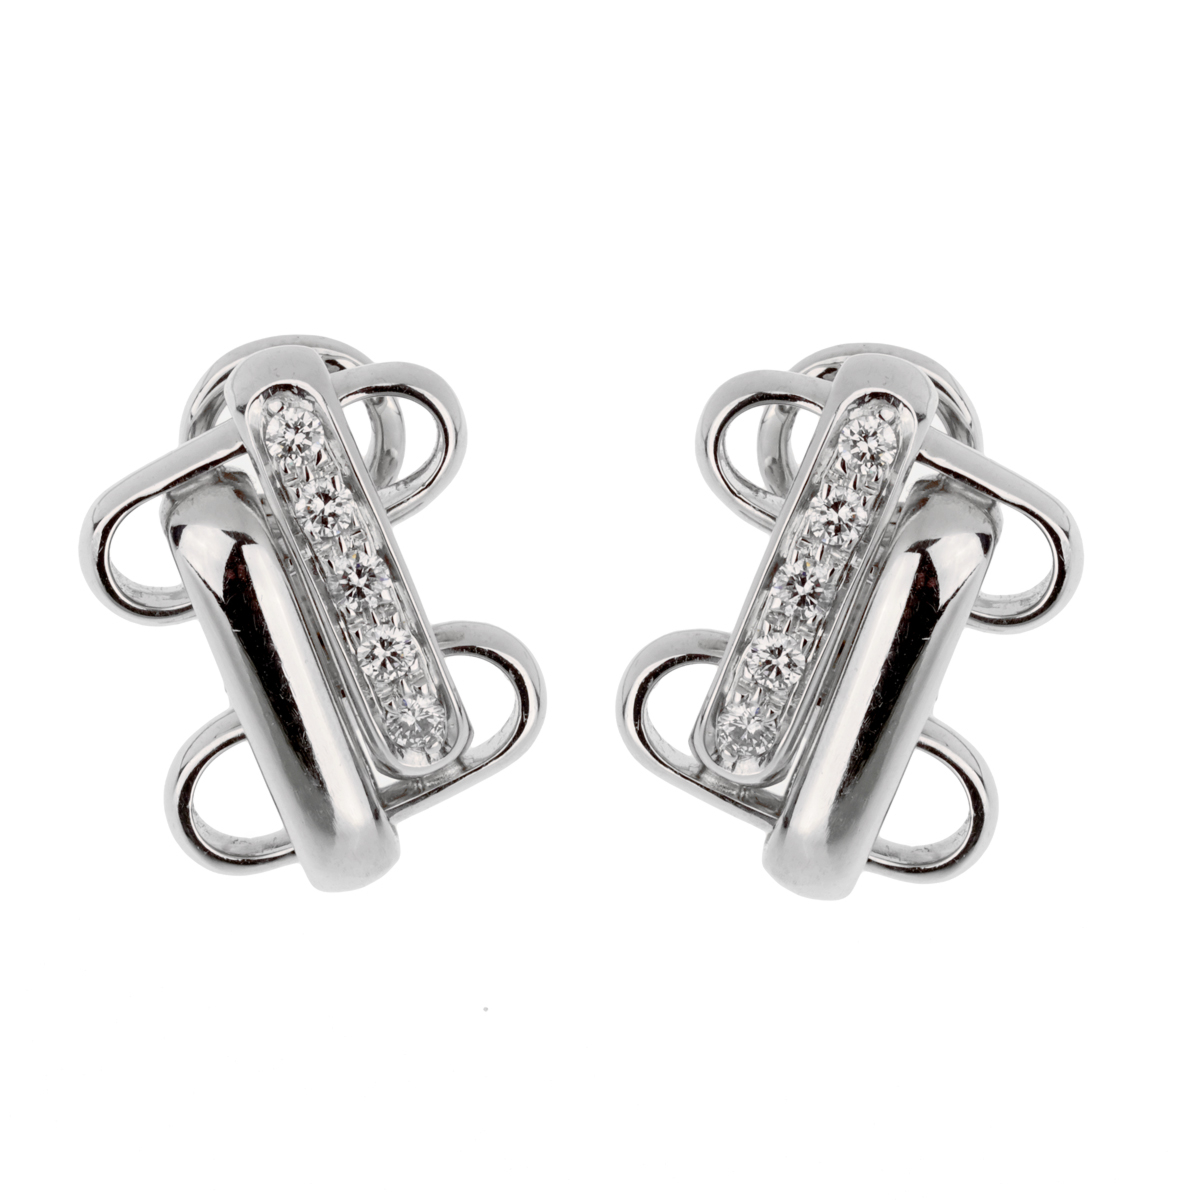 Pomellato Diamond White Gold Earrings - Pomellato Jewelry